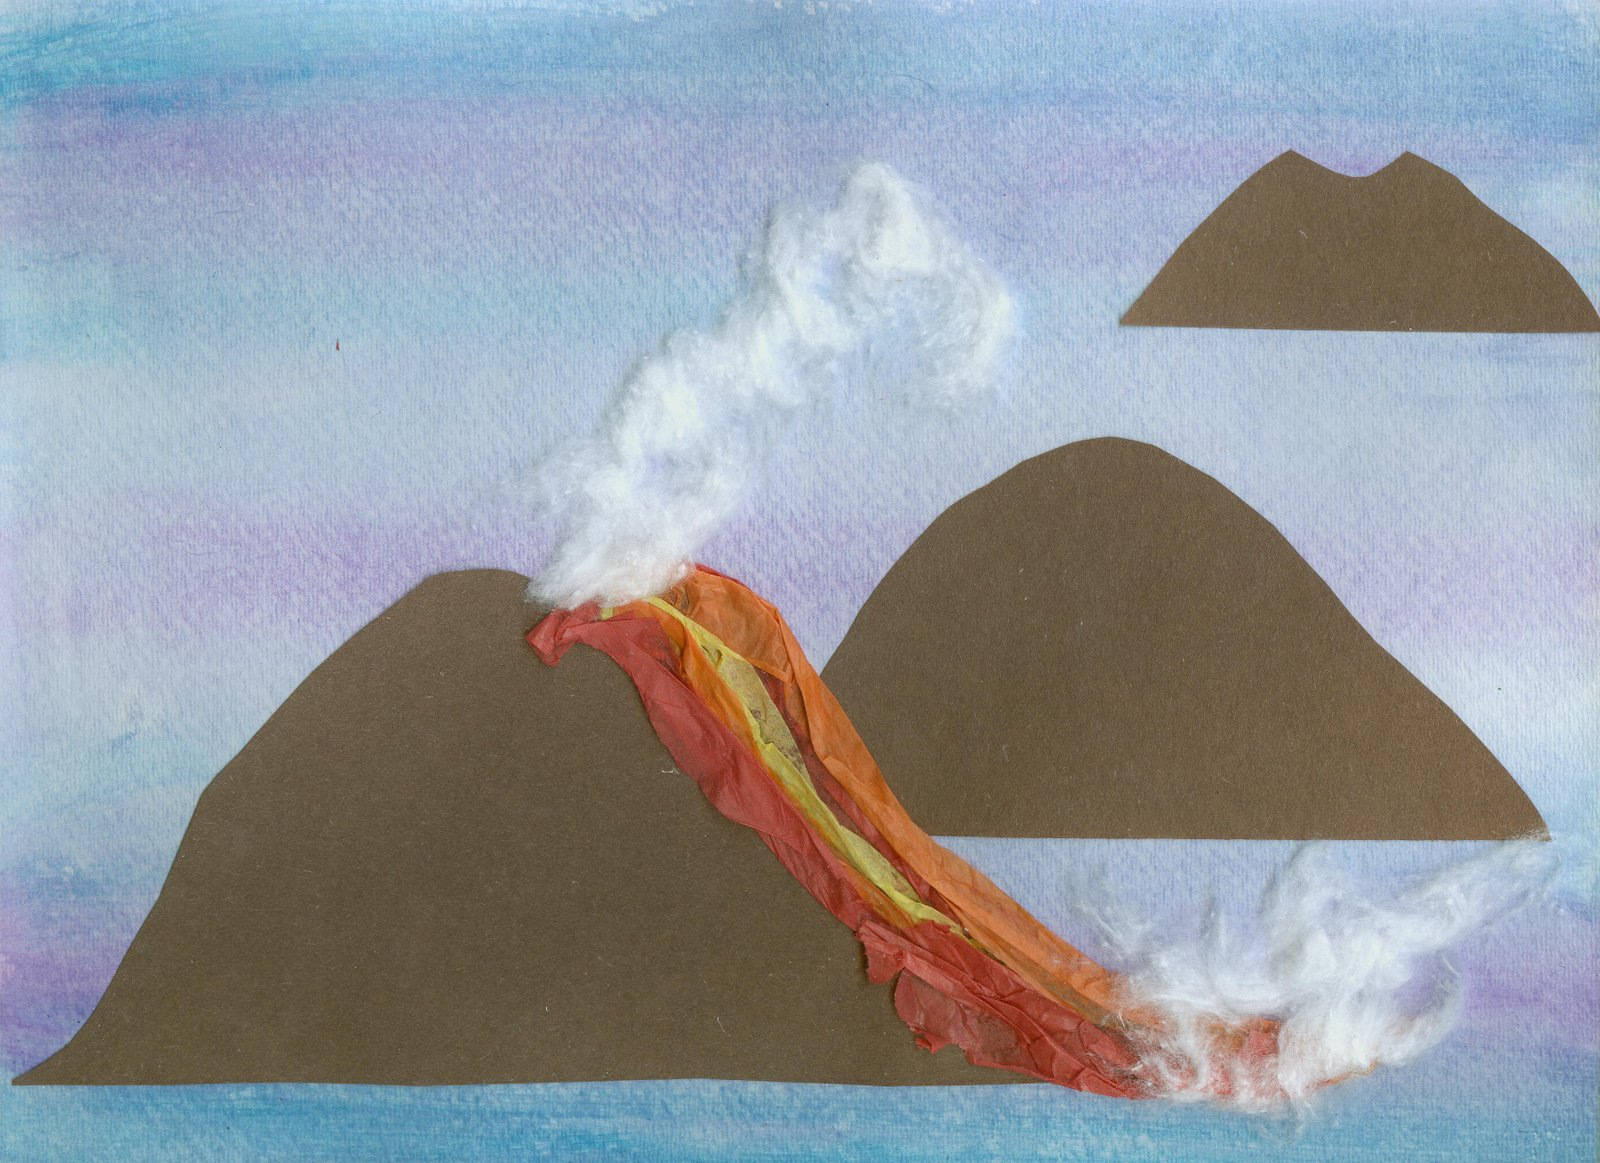 Volcano Project Ideas For Kids